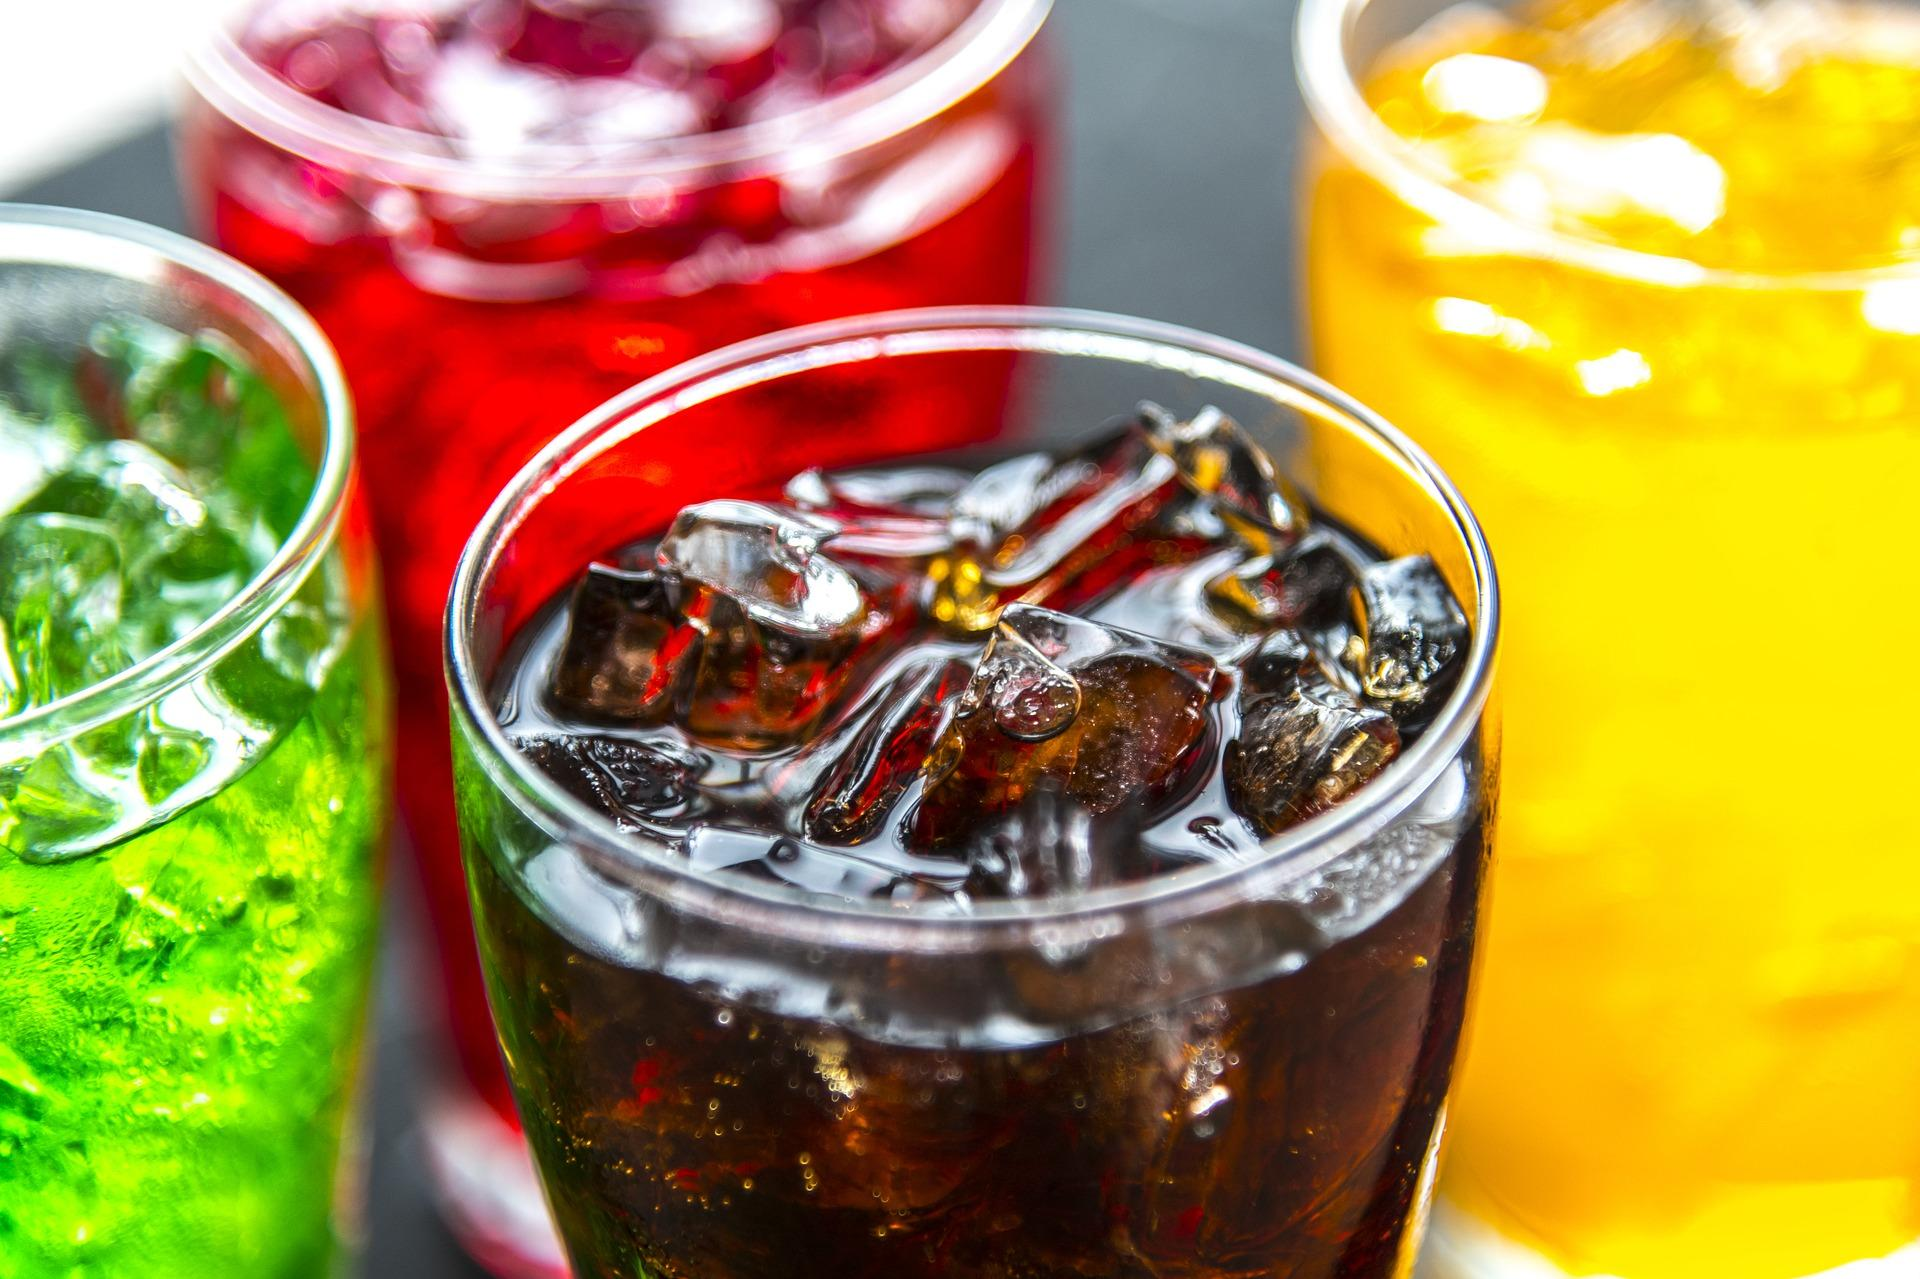 Experts link diet soft drinks to 'higher risk of early death'